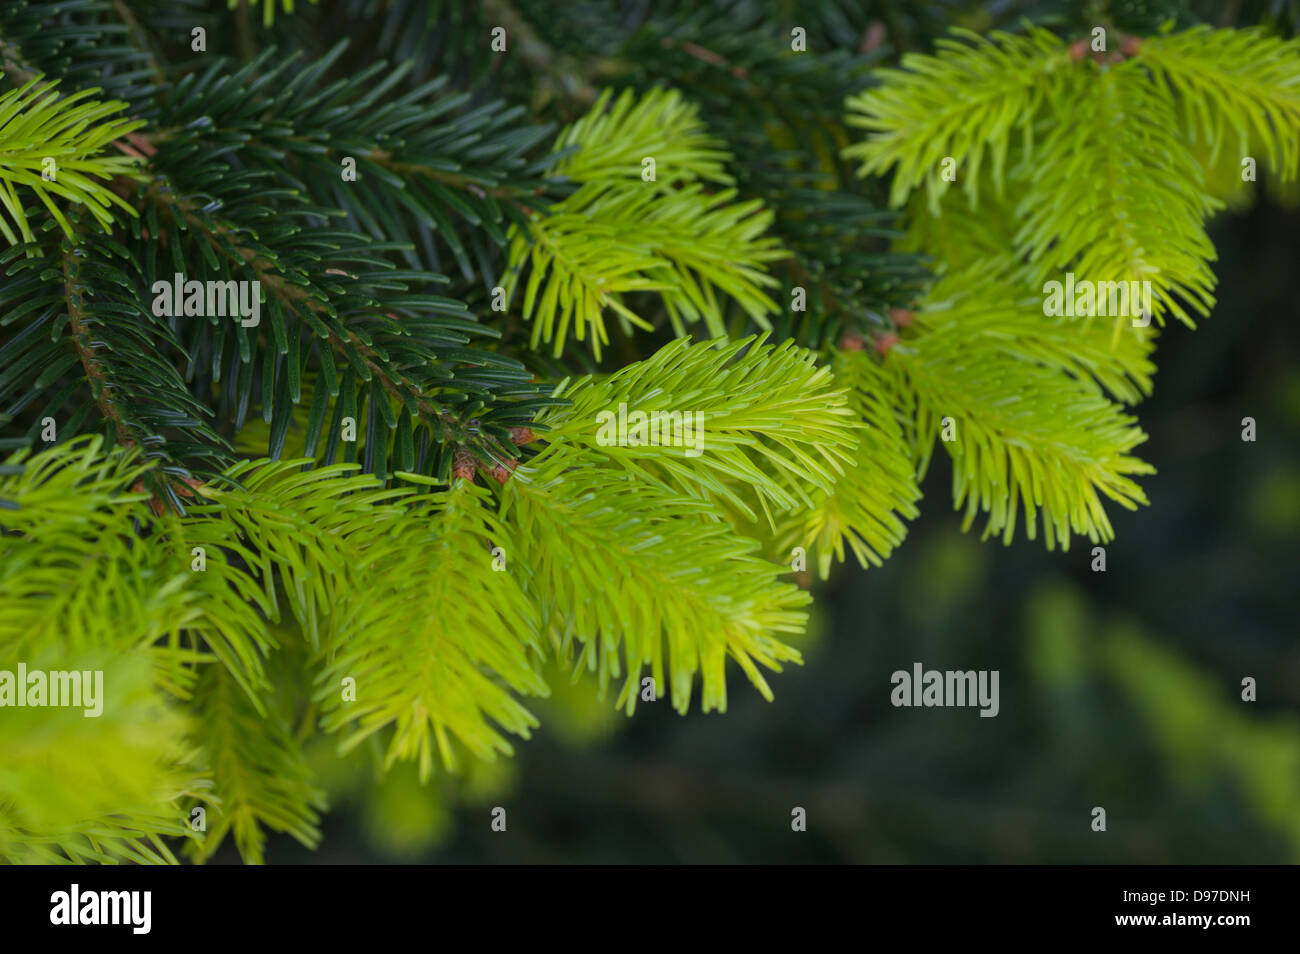 Growth flush on a conifer tree - Stock Image